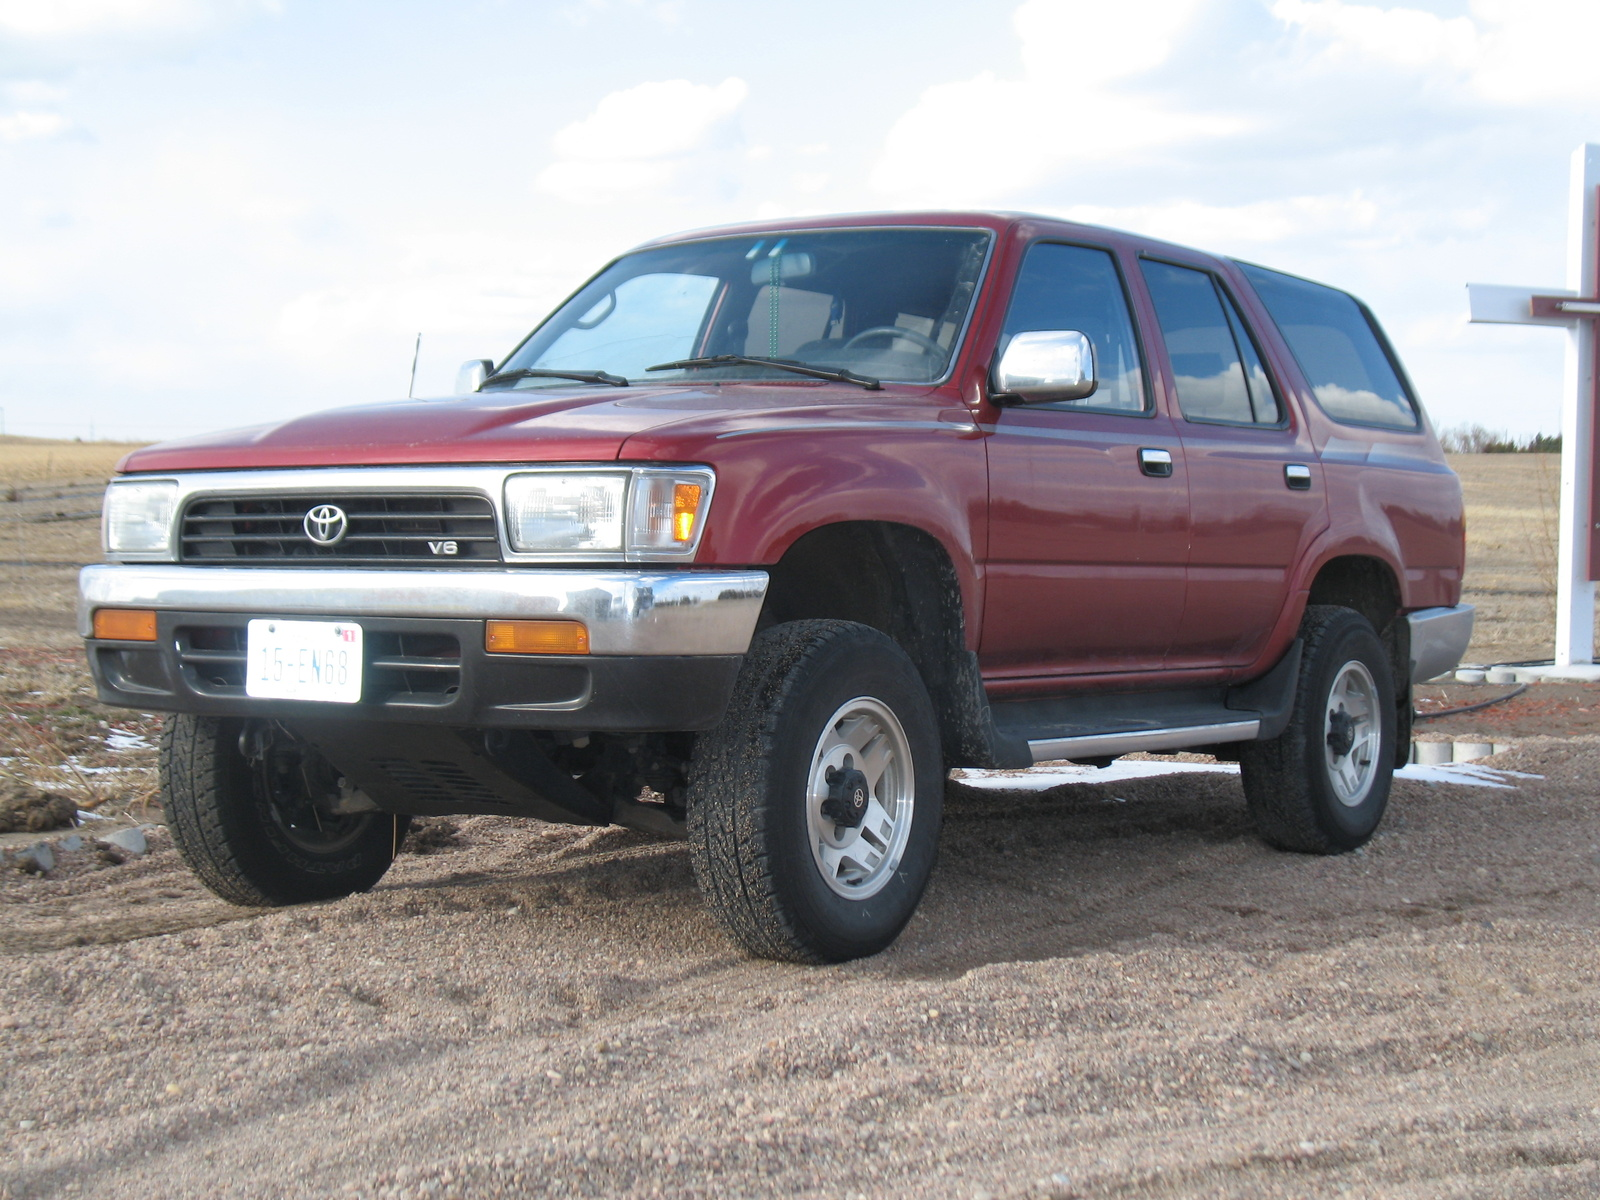 1994 Toyota 4runner Photos Informations Articles 02 Mazda Protege 1 8l Engine Diagram 10